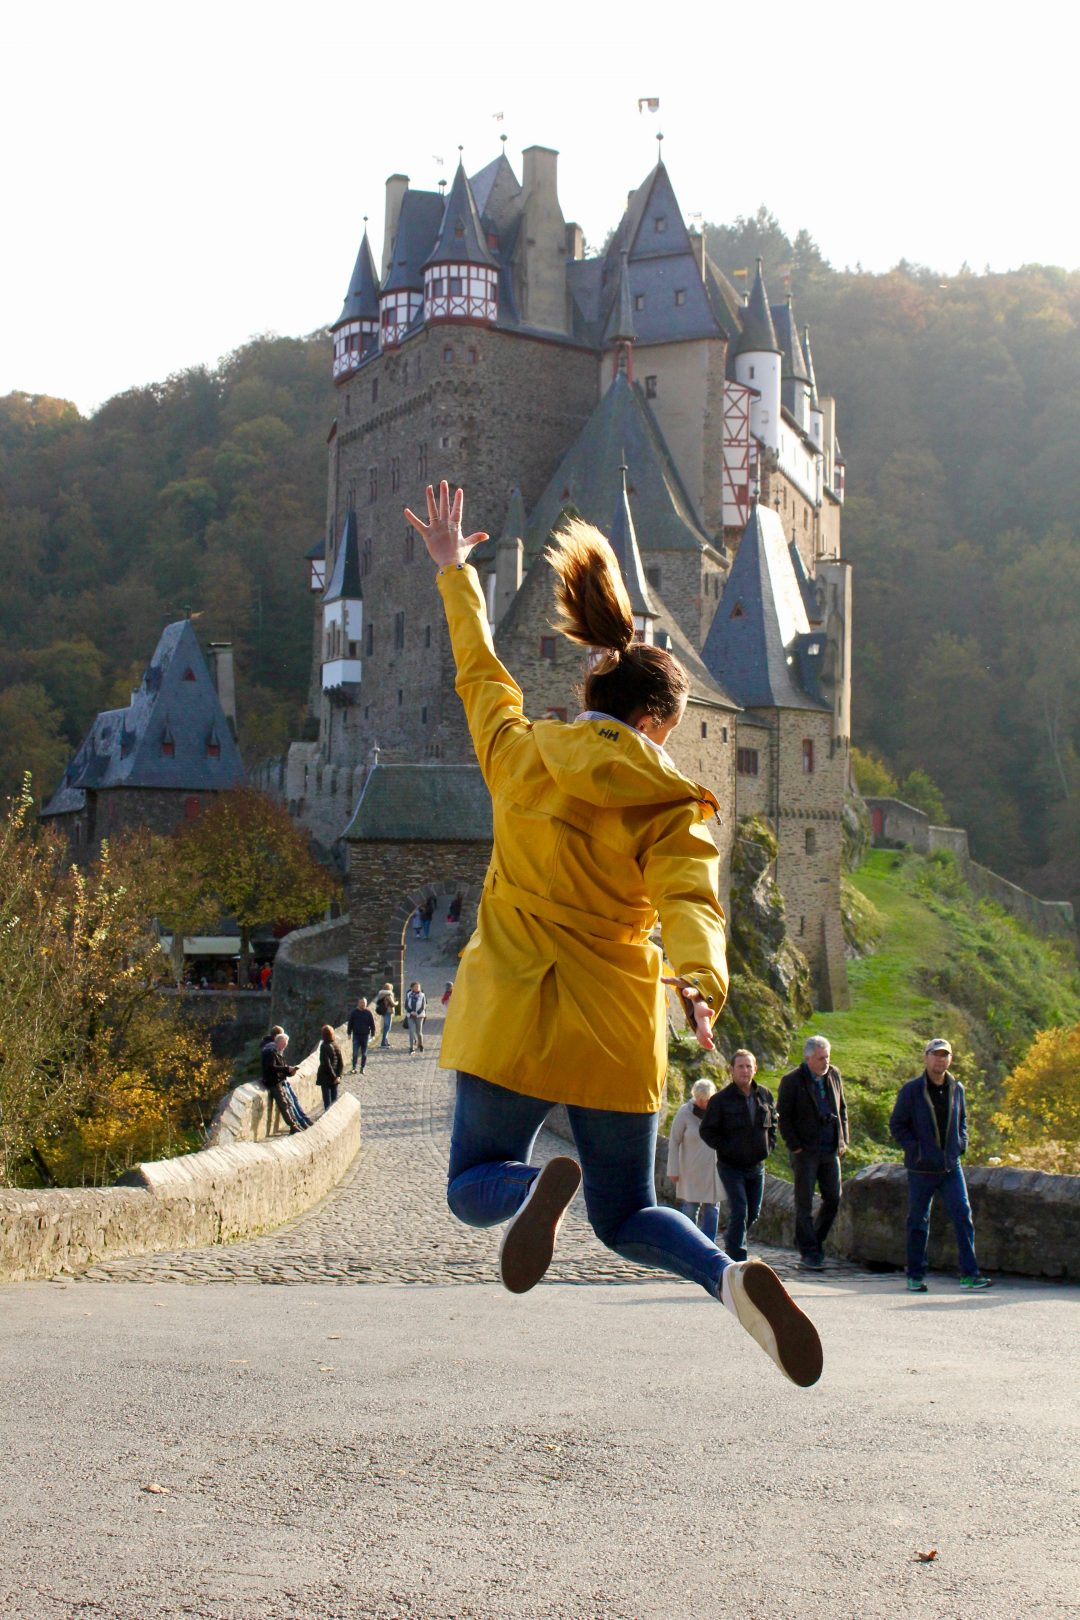 Jumping for joy at Burg Eltz, Germany